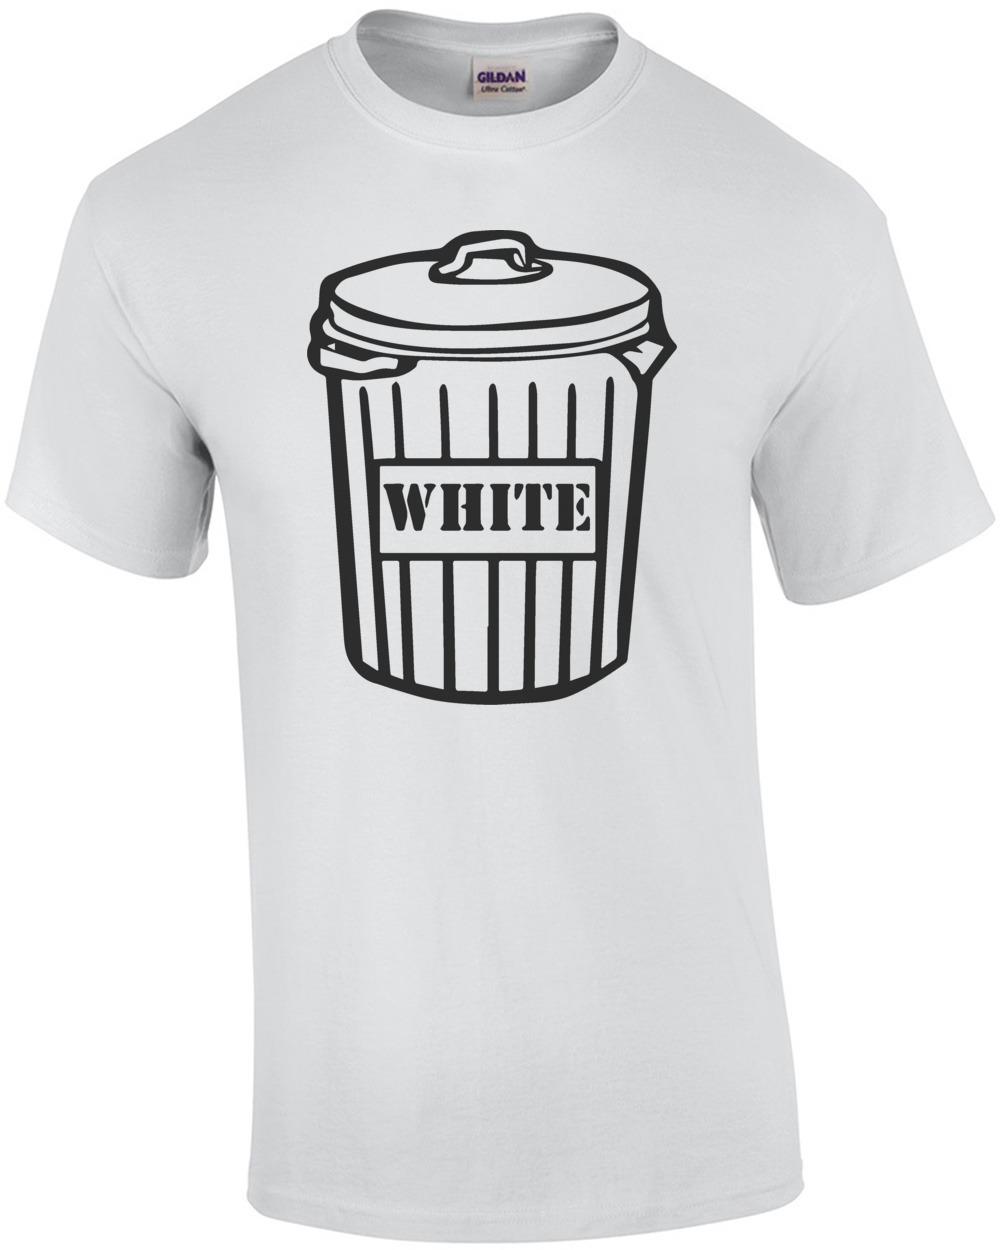 White Trash - Funny T-Shirt shirt